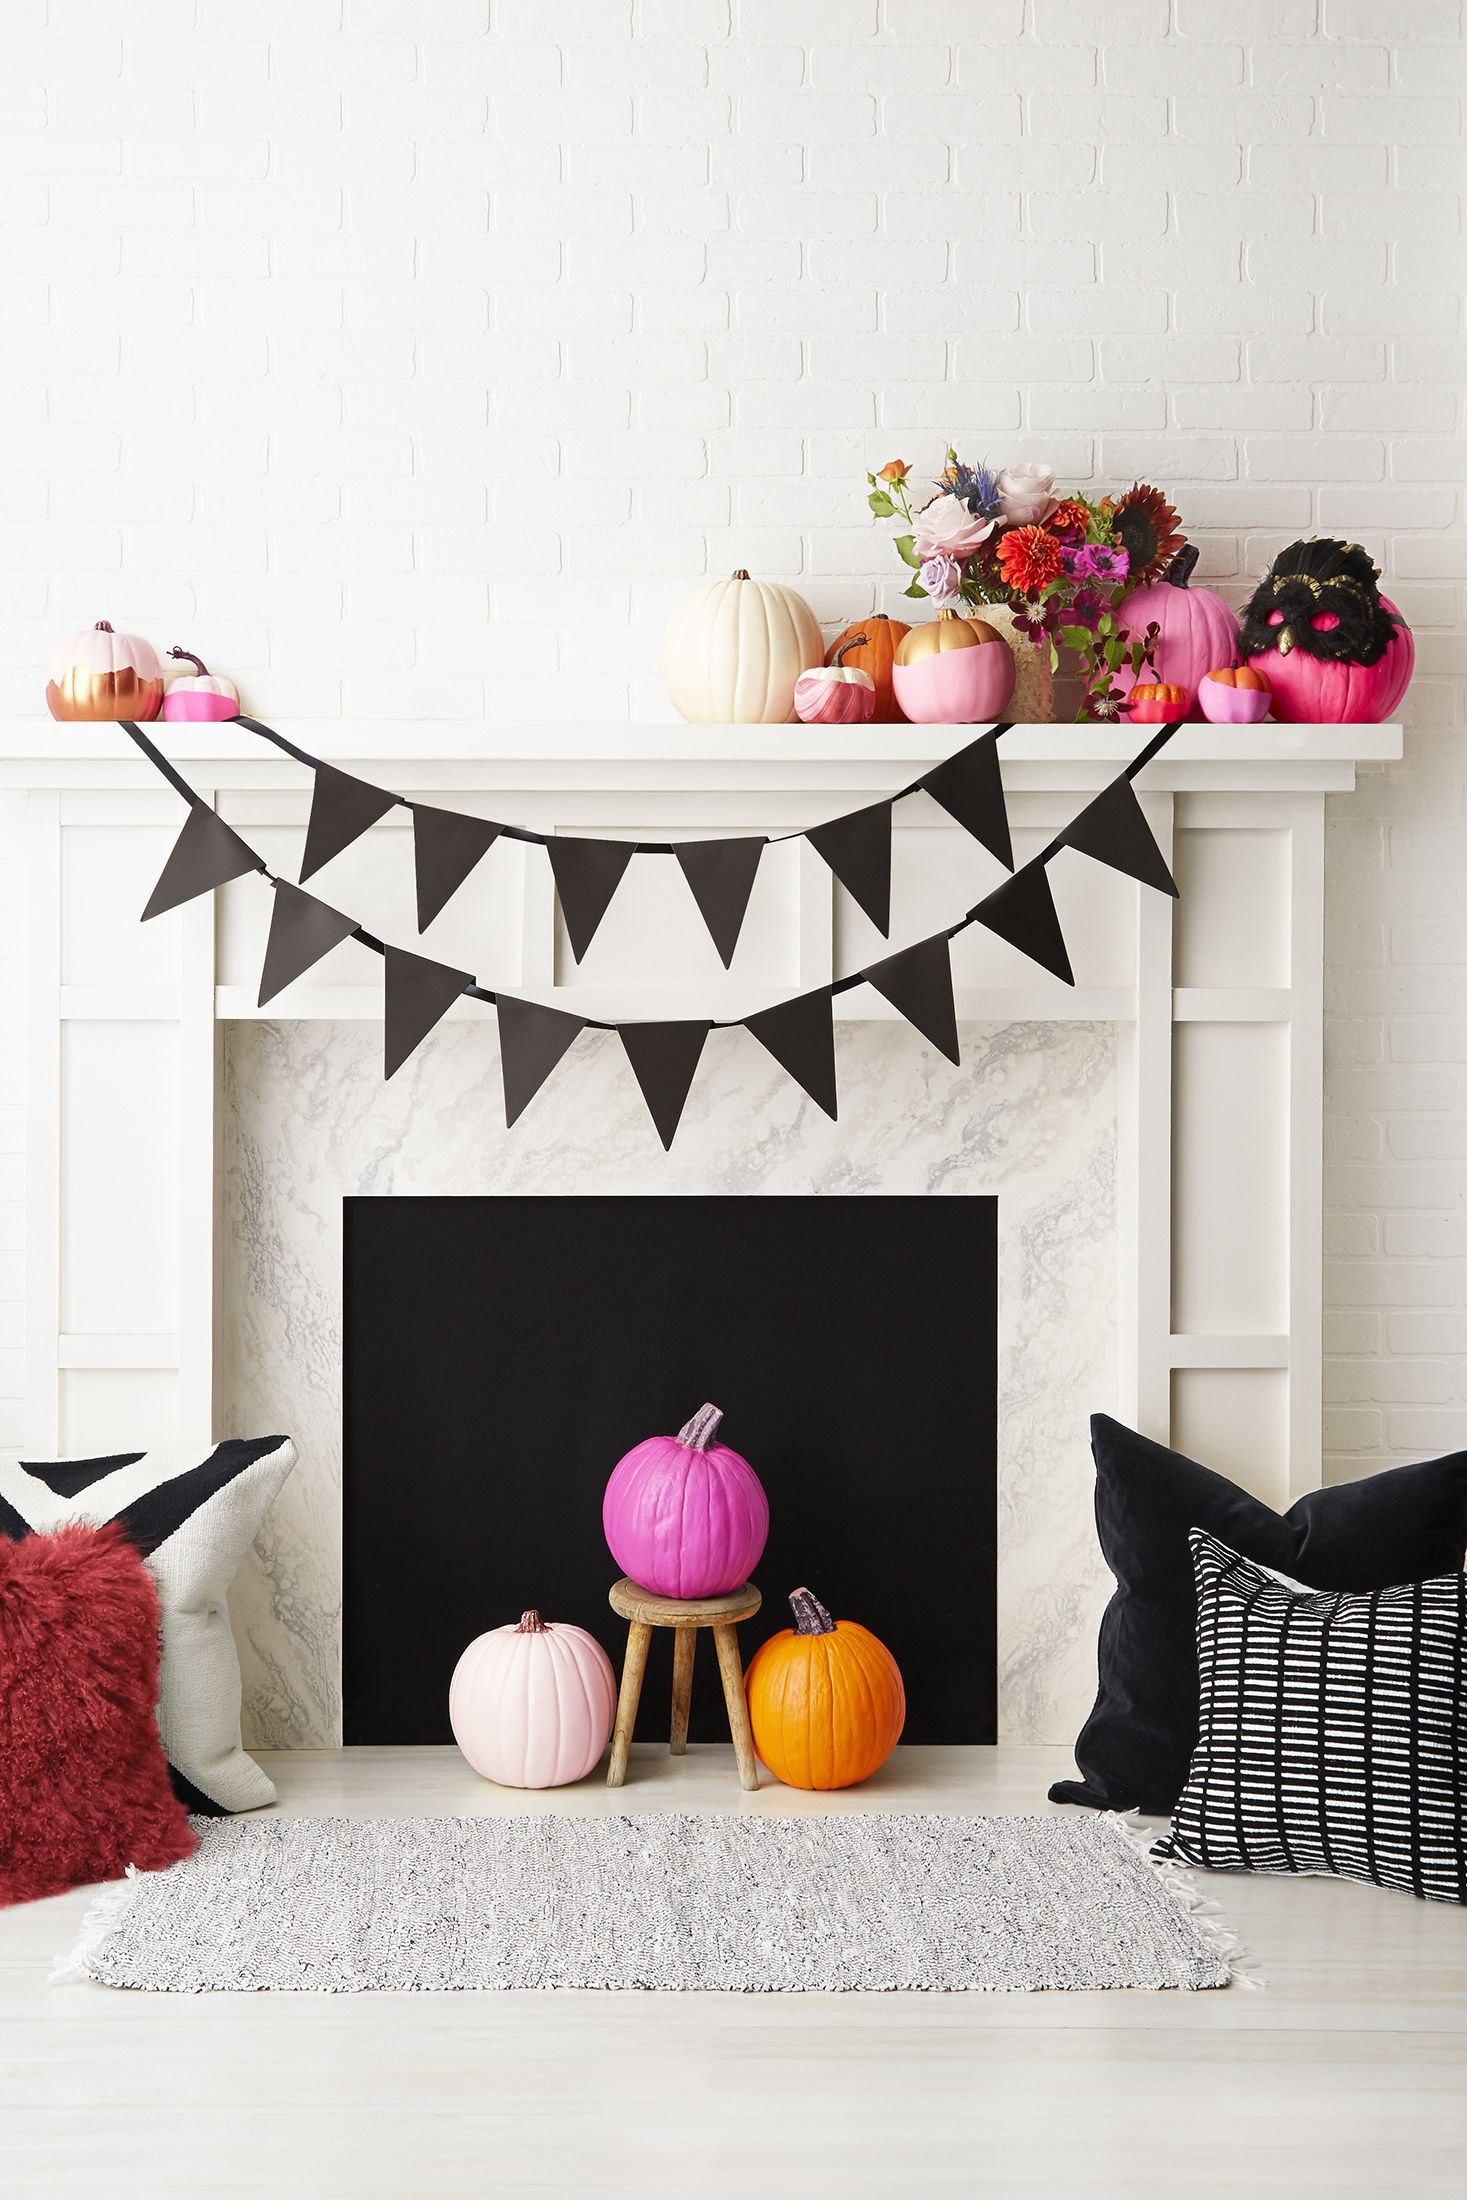 78 Easy Diy Halloween Decorations 2020 Cute Halloween Decorating Ideas